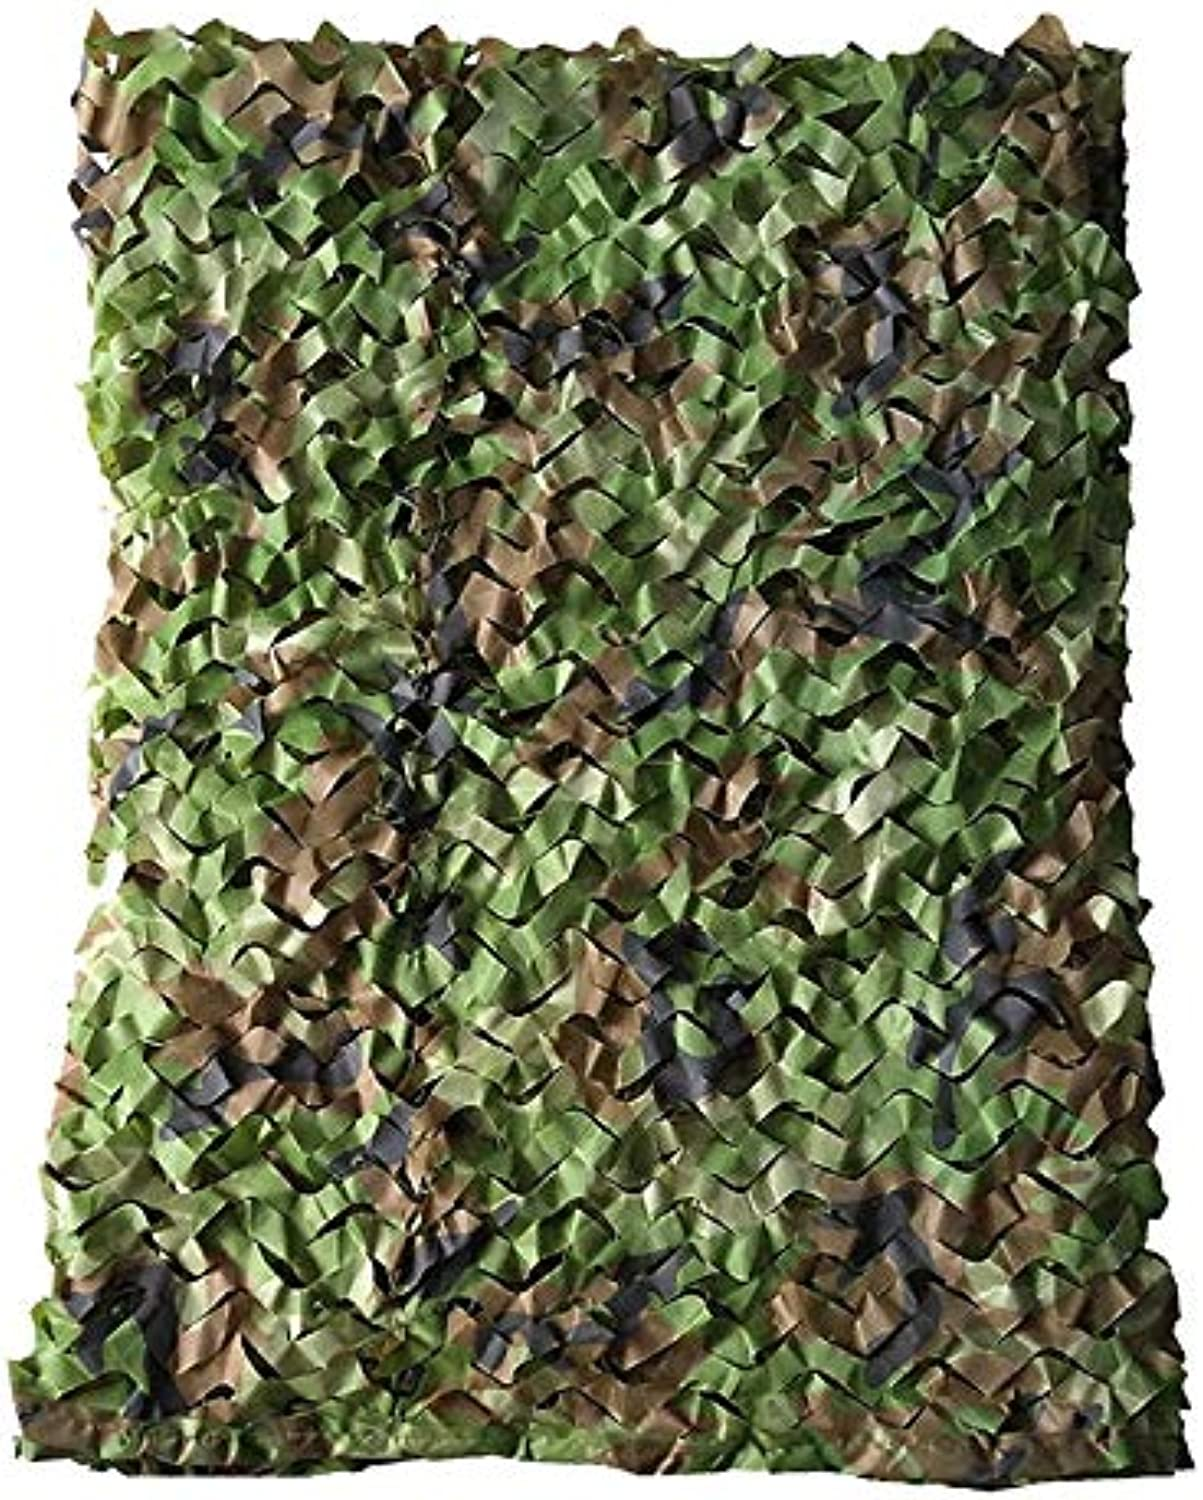 2m×3m Woodland Camouflage Net Field Camouflage Net Camping Army Hunting Shooting Sunscreen Net (Size   6m×6m)